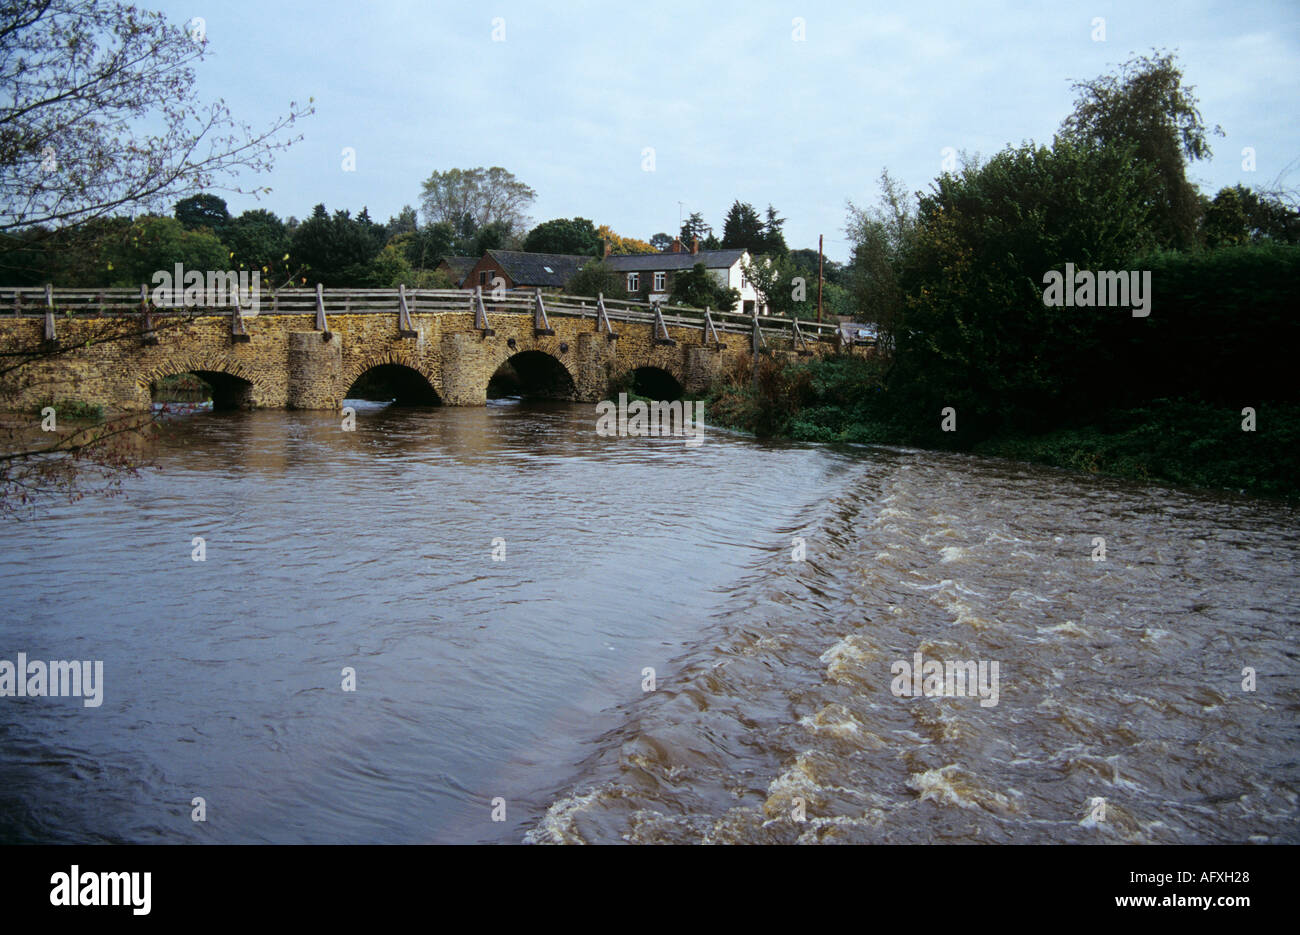 TILFORD SURREY England  UK November The River Wey in flood flowing under the old bridge - Stock Image